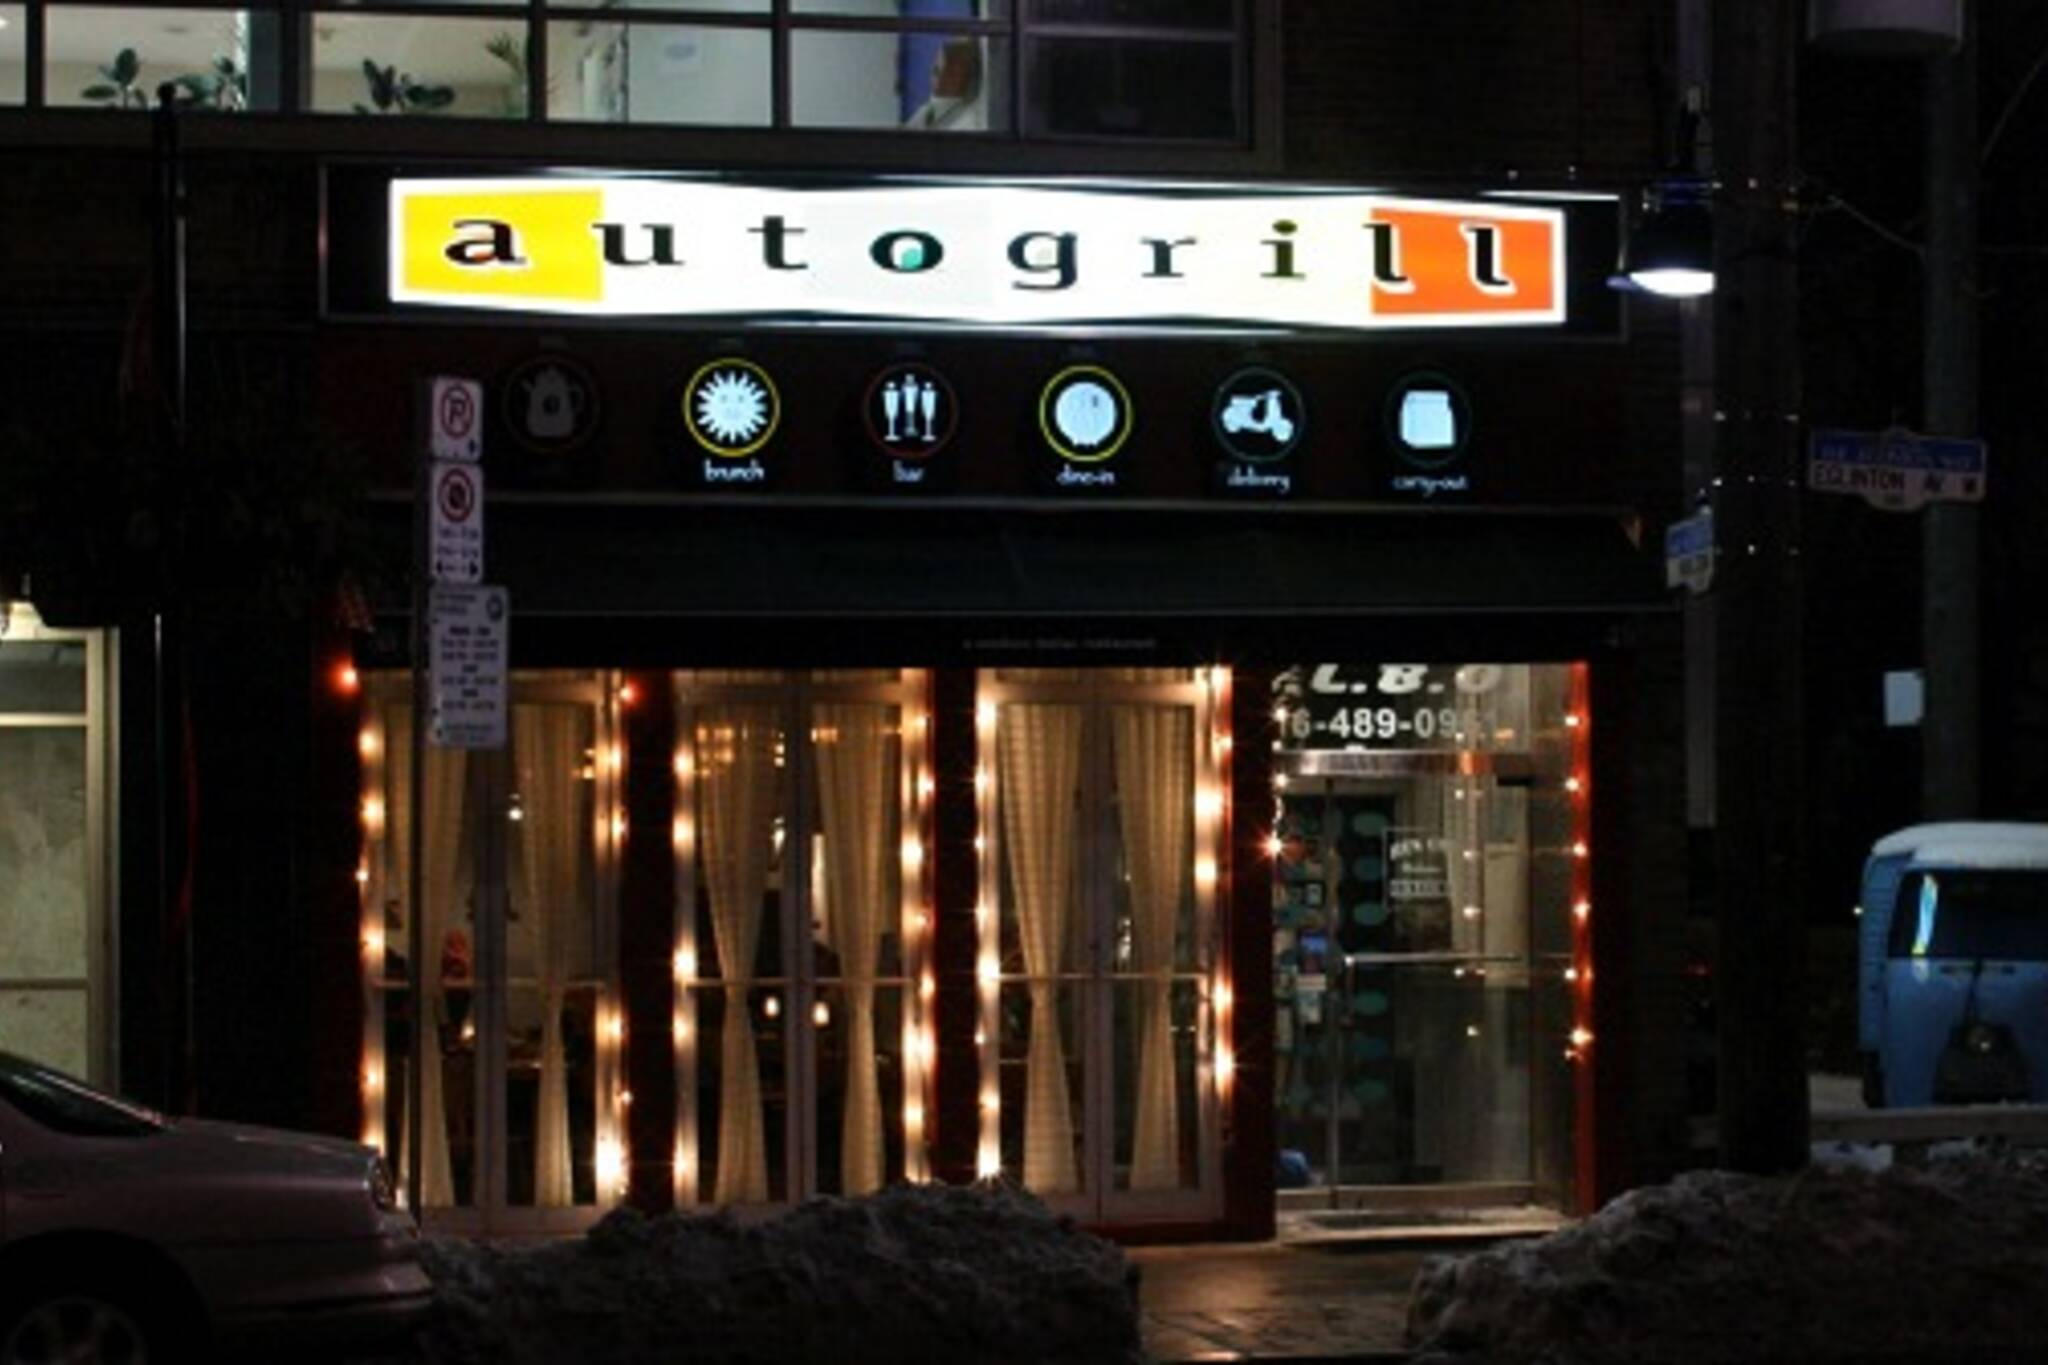 Autogrill restaurant front